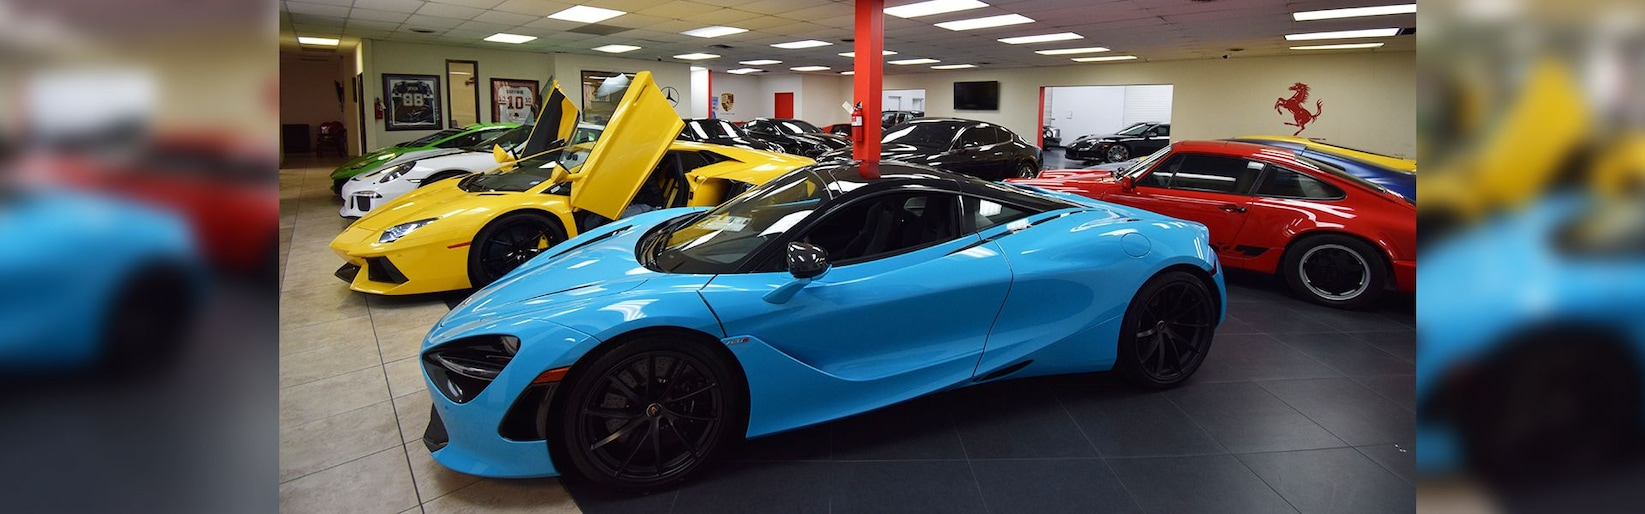 Supercar Dealership Near Me >> Exotic Sports Cars Luxury Sedans Coupes Detroit Muscle